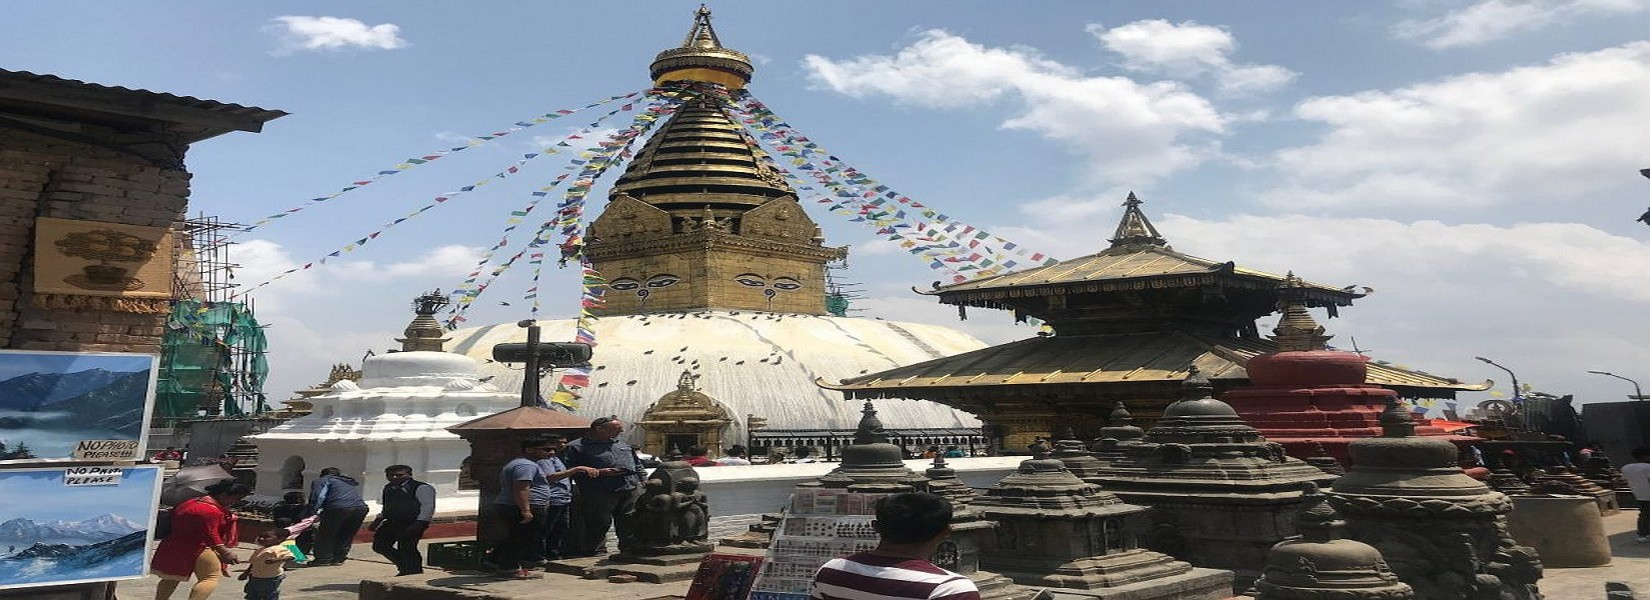 Luxury family tour Nepal